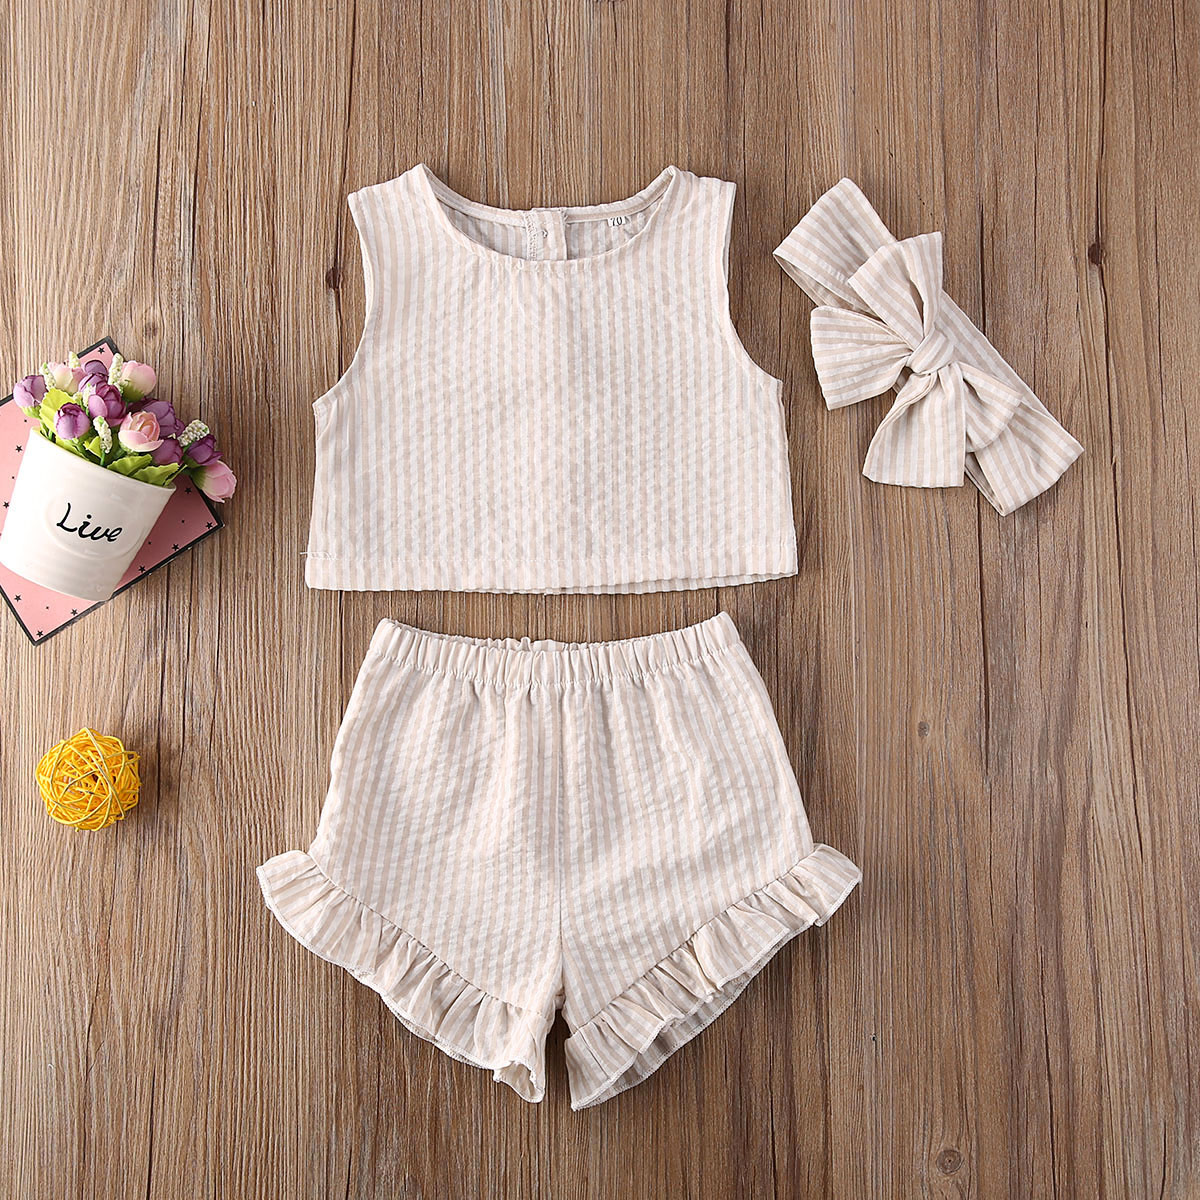 Emmababy Newborn Baby Girl Clothes Sleeveless Striped Crop Vest Tops Ruffle Short Pants Headband 3Pcs Outfits Cotton Clothes